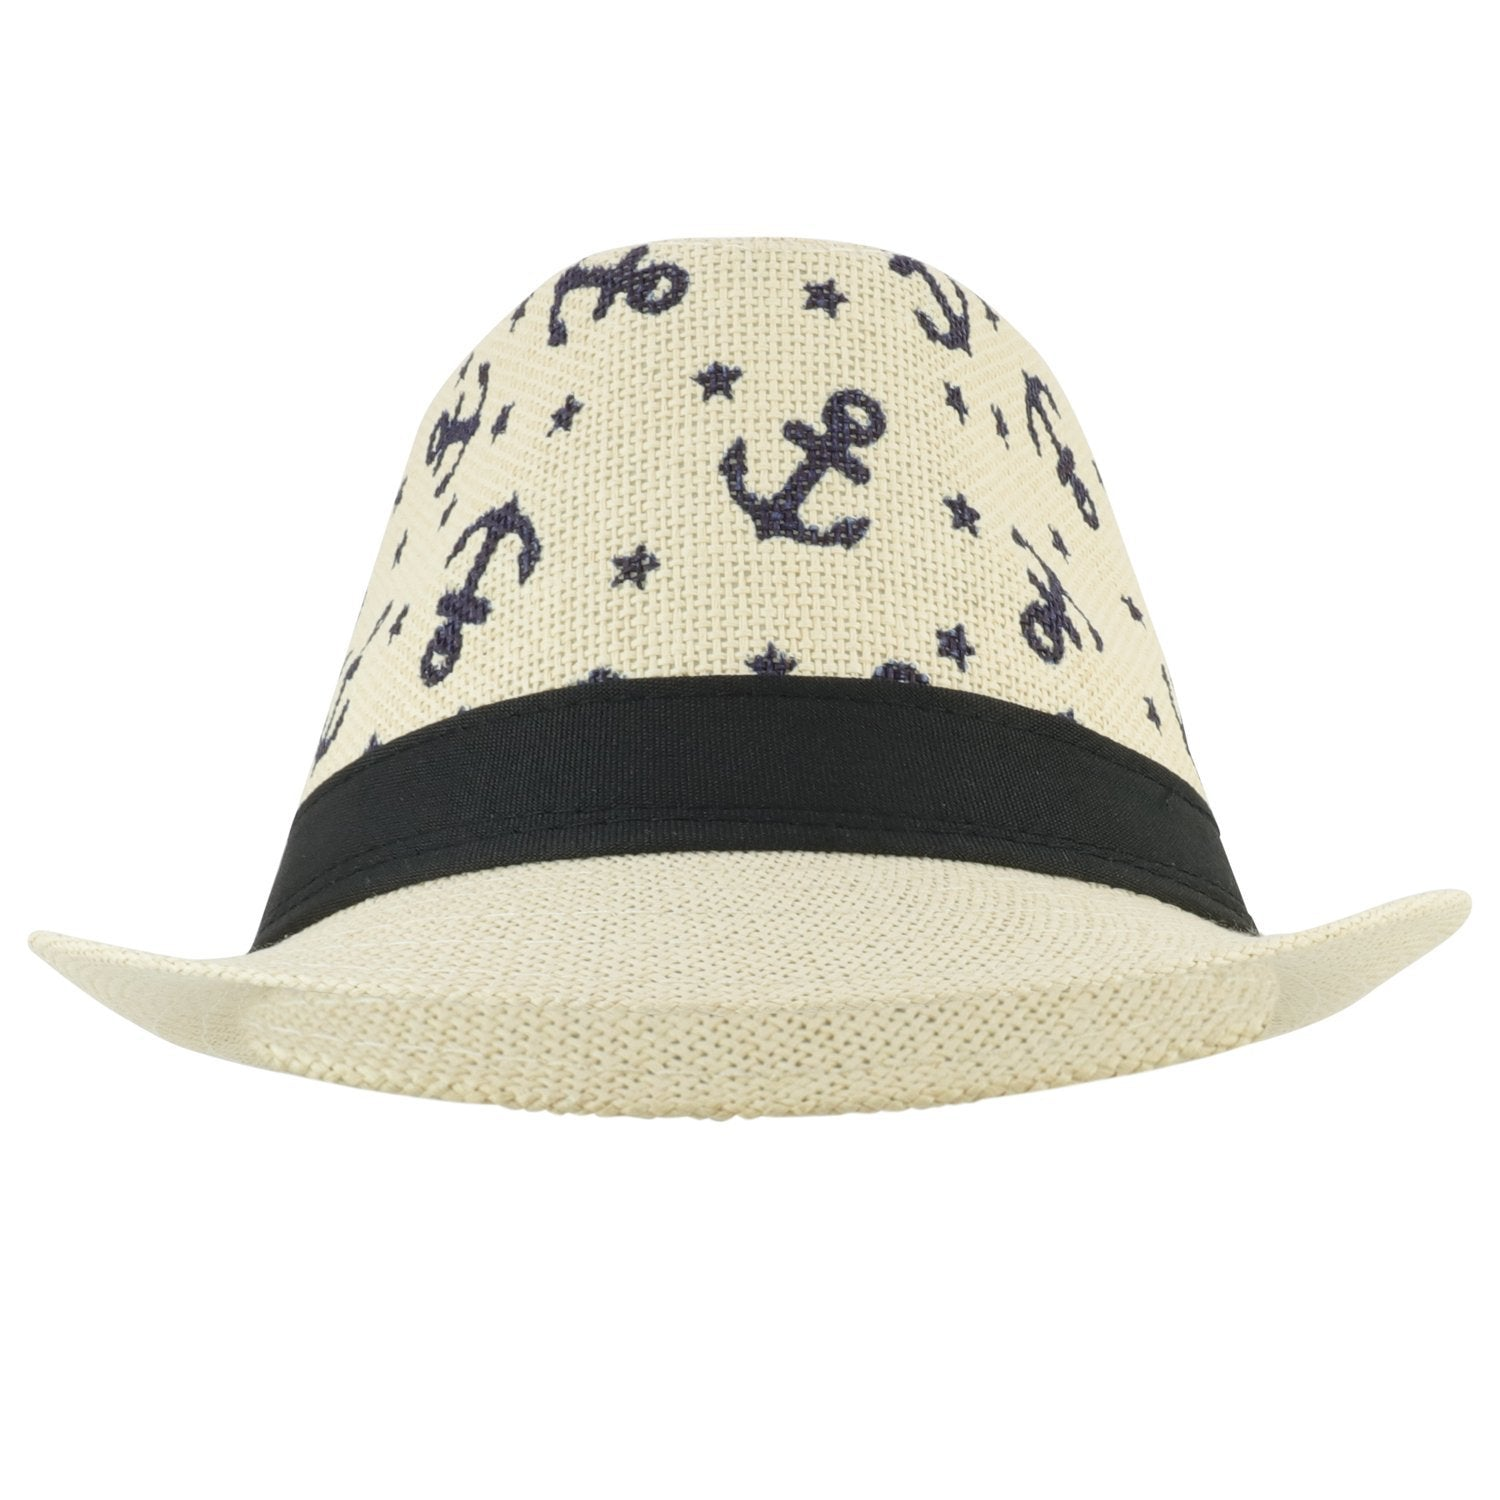 1178b1086 Armycrew Anchors and Stars Printed Summer Paper Straw Fedora Hat